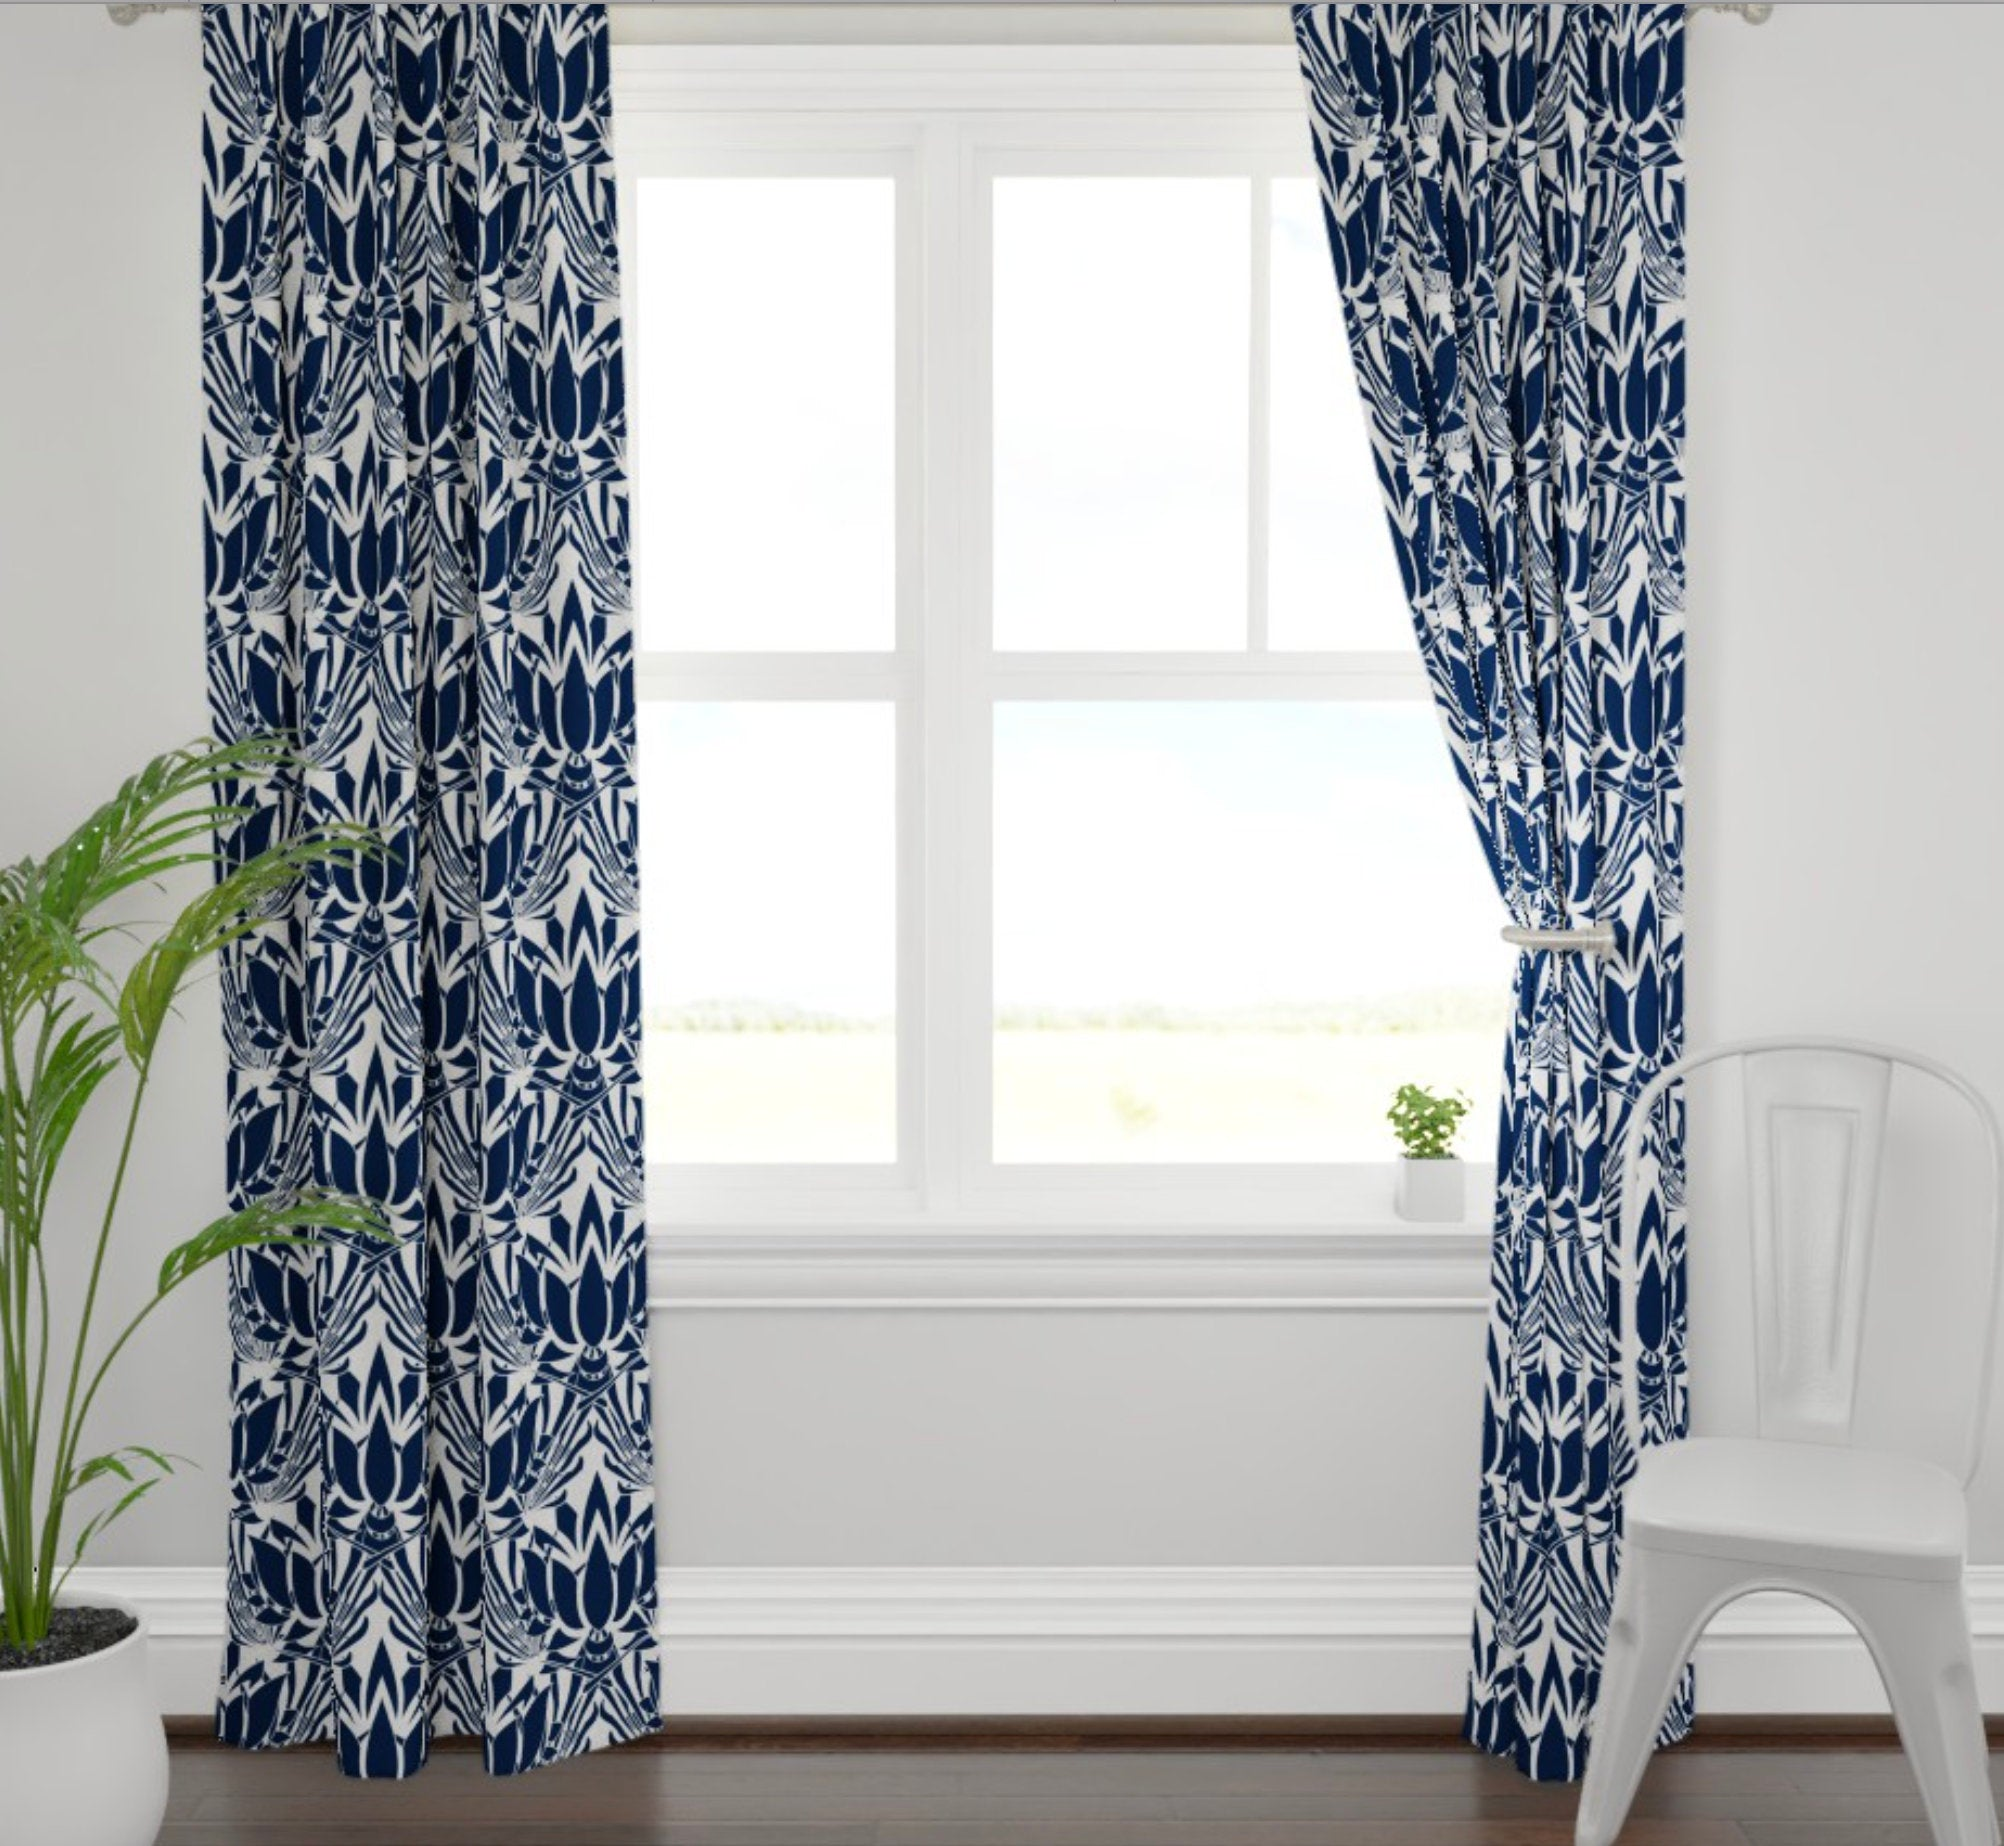 Lotus print curtains navy curtains dining room curtains navy living room  curtains navy lotus fabric blue lotus fabric dining room drapes